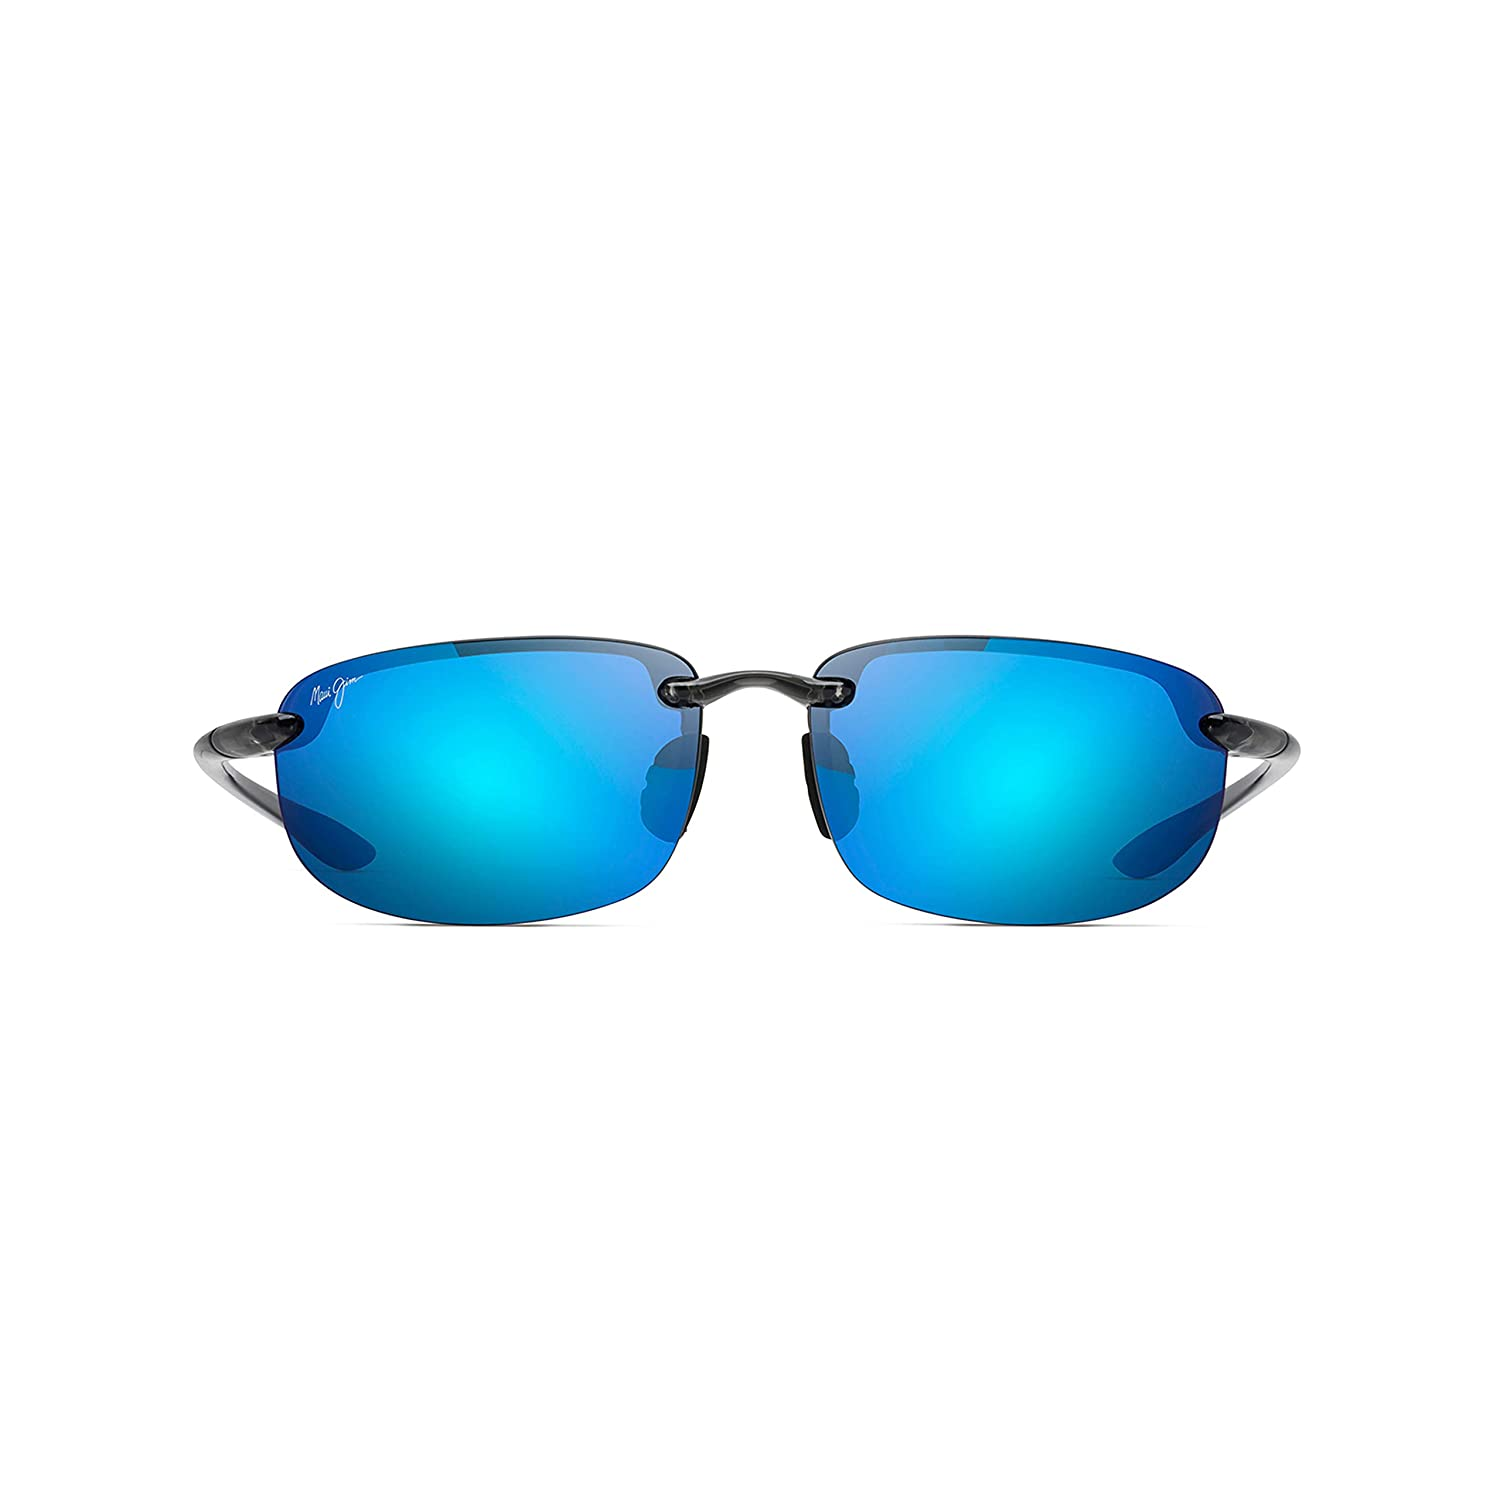 Amazon.com: Maui Jim Sunglasses | Hookipa B407-11 ...